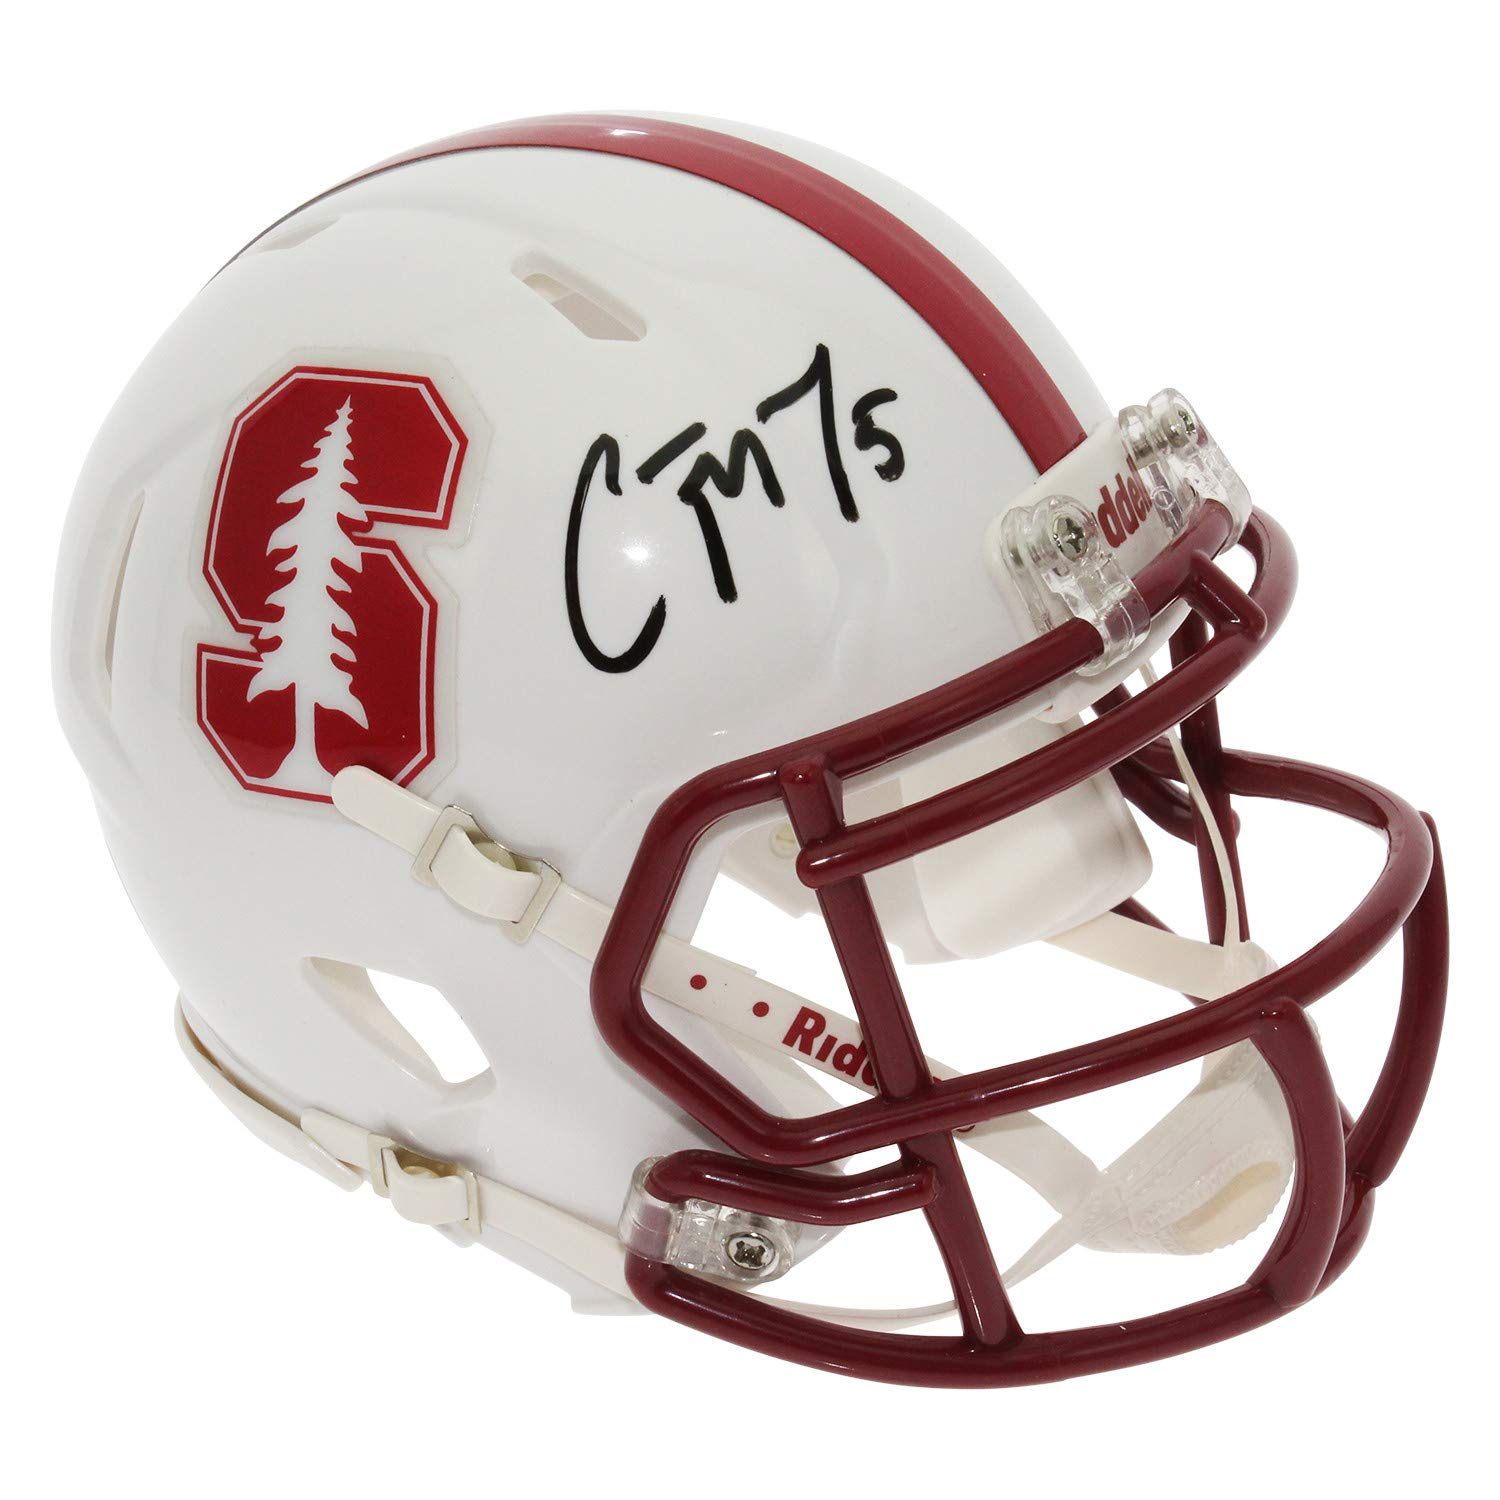 Christian McCaffrey Autographed Signed Stanford Cardinal Speed Mini Helmet - JSA Authentic